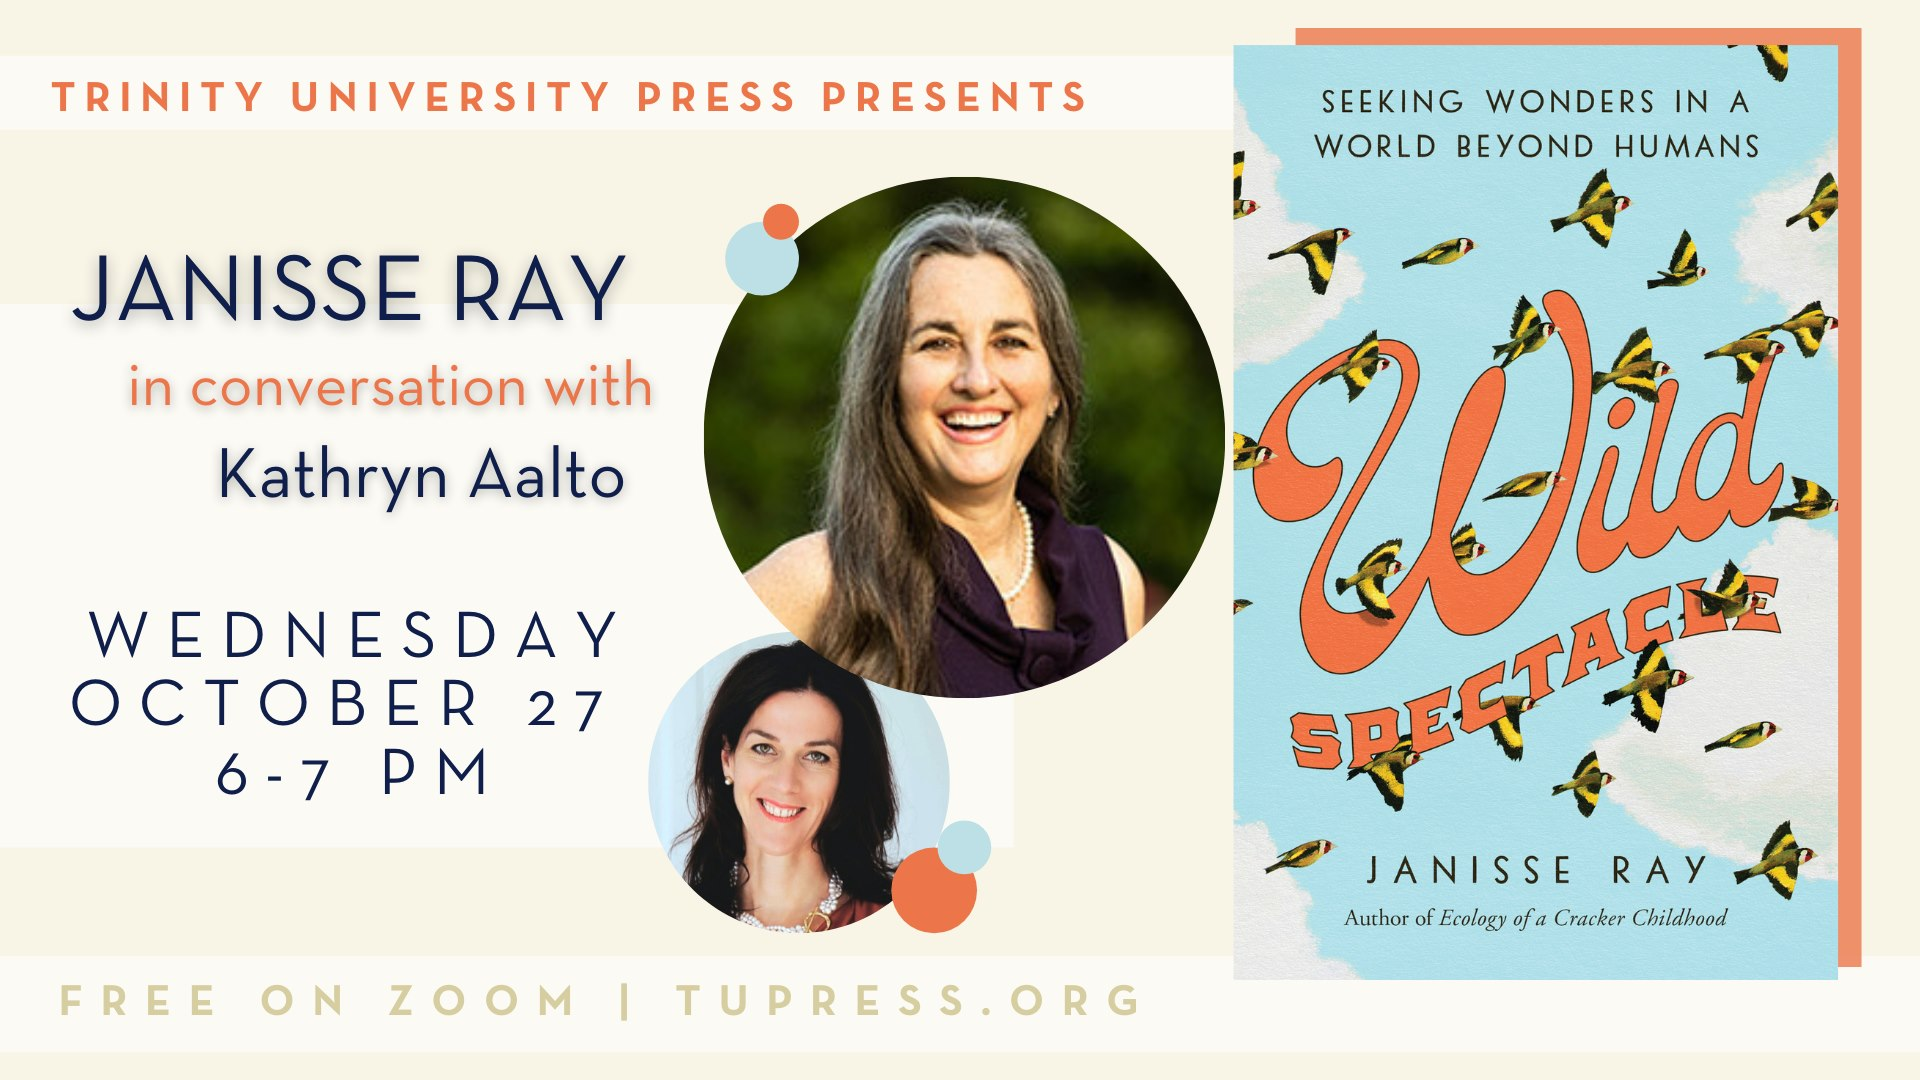 'Wild Spectacle': A Conversation Between Autors Janisse Ray and Kathryn Aalto